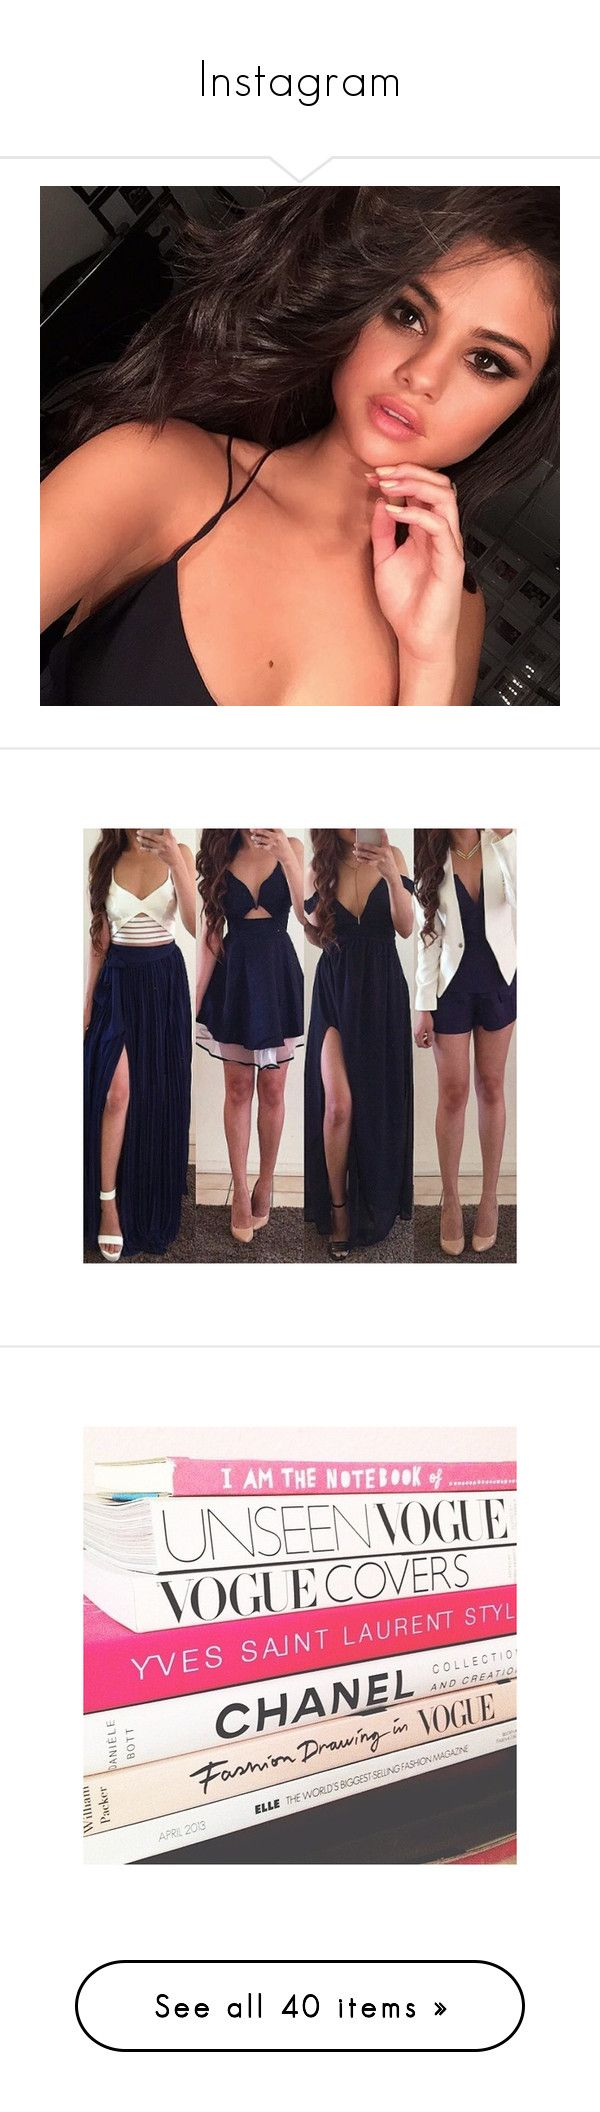 """""""Instagram"""" by key-kardashian ❤ liked on Polyvore featuring selena, pictures, instagram, pics, makeup, house, rooms, backgrounds, icons and people"""